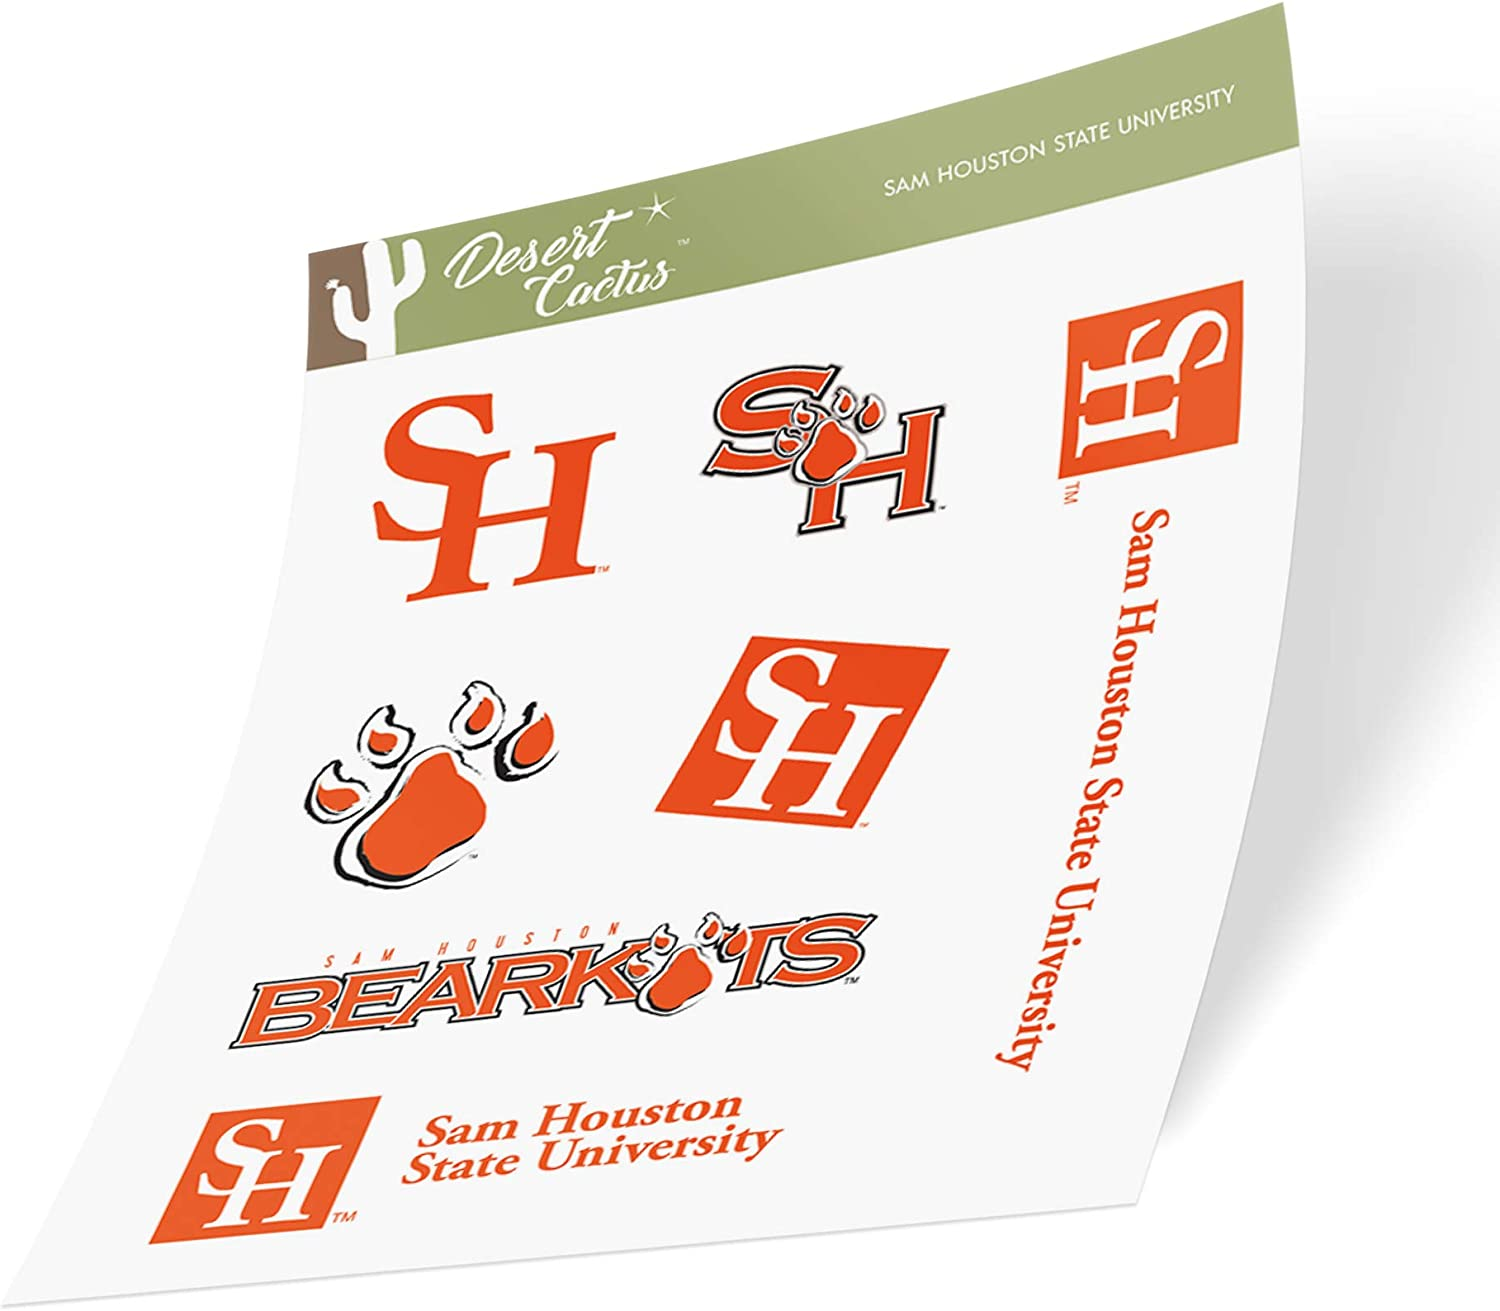 Sam Houston State University SHSU Bearkats NCAA Sticker Vinyl Decal Laptop Water Bottle Car Scrapbook (Type 2 Sheet)